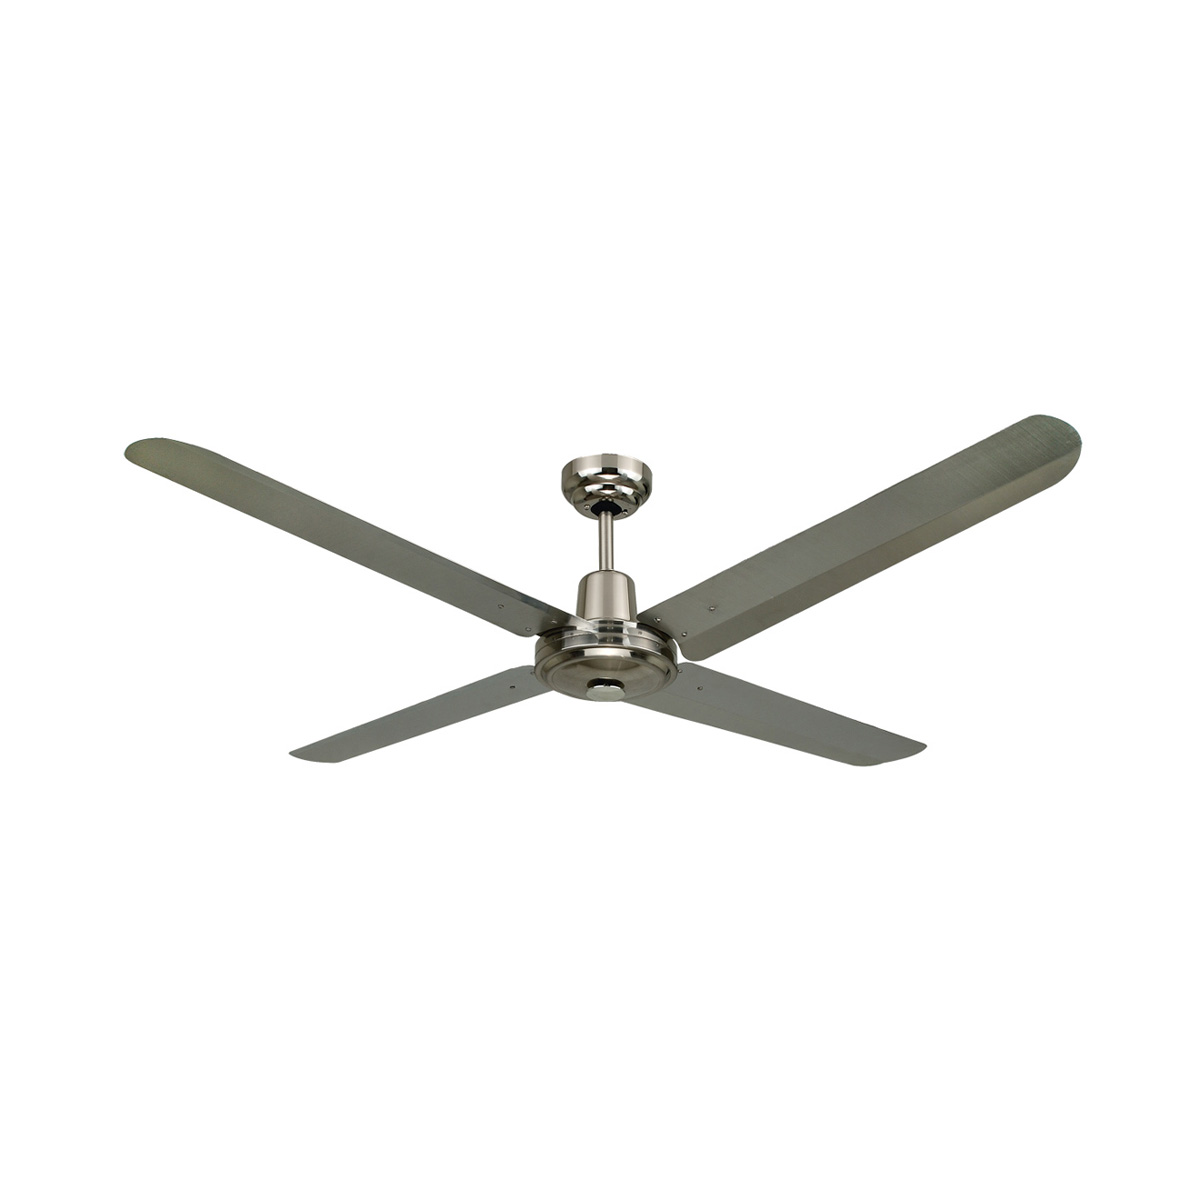 avia concord ceiling ceilings fan ideas prod by stainless steel hei canfield wid qlt fans inch luminance